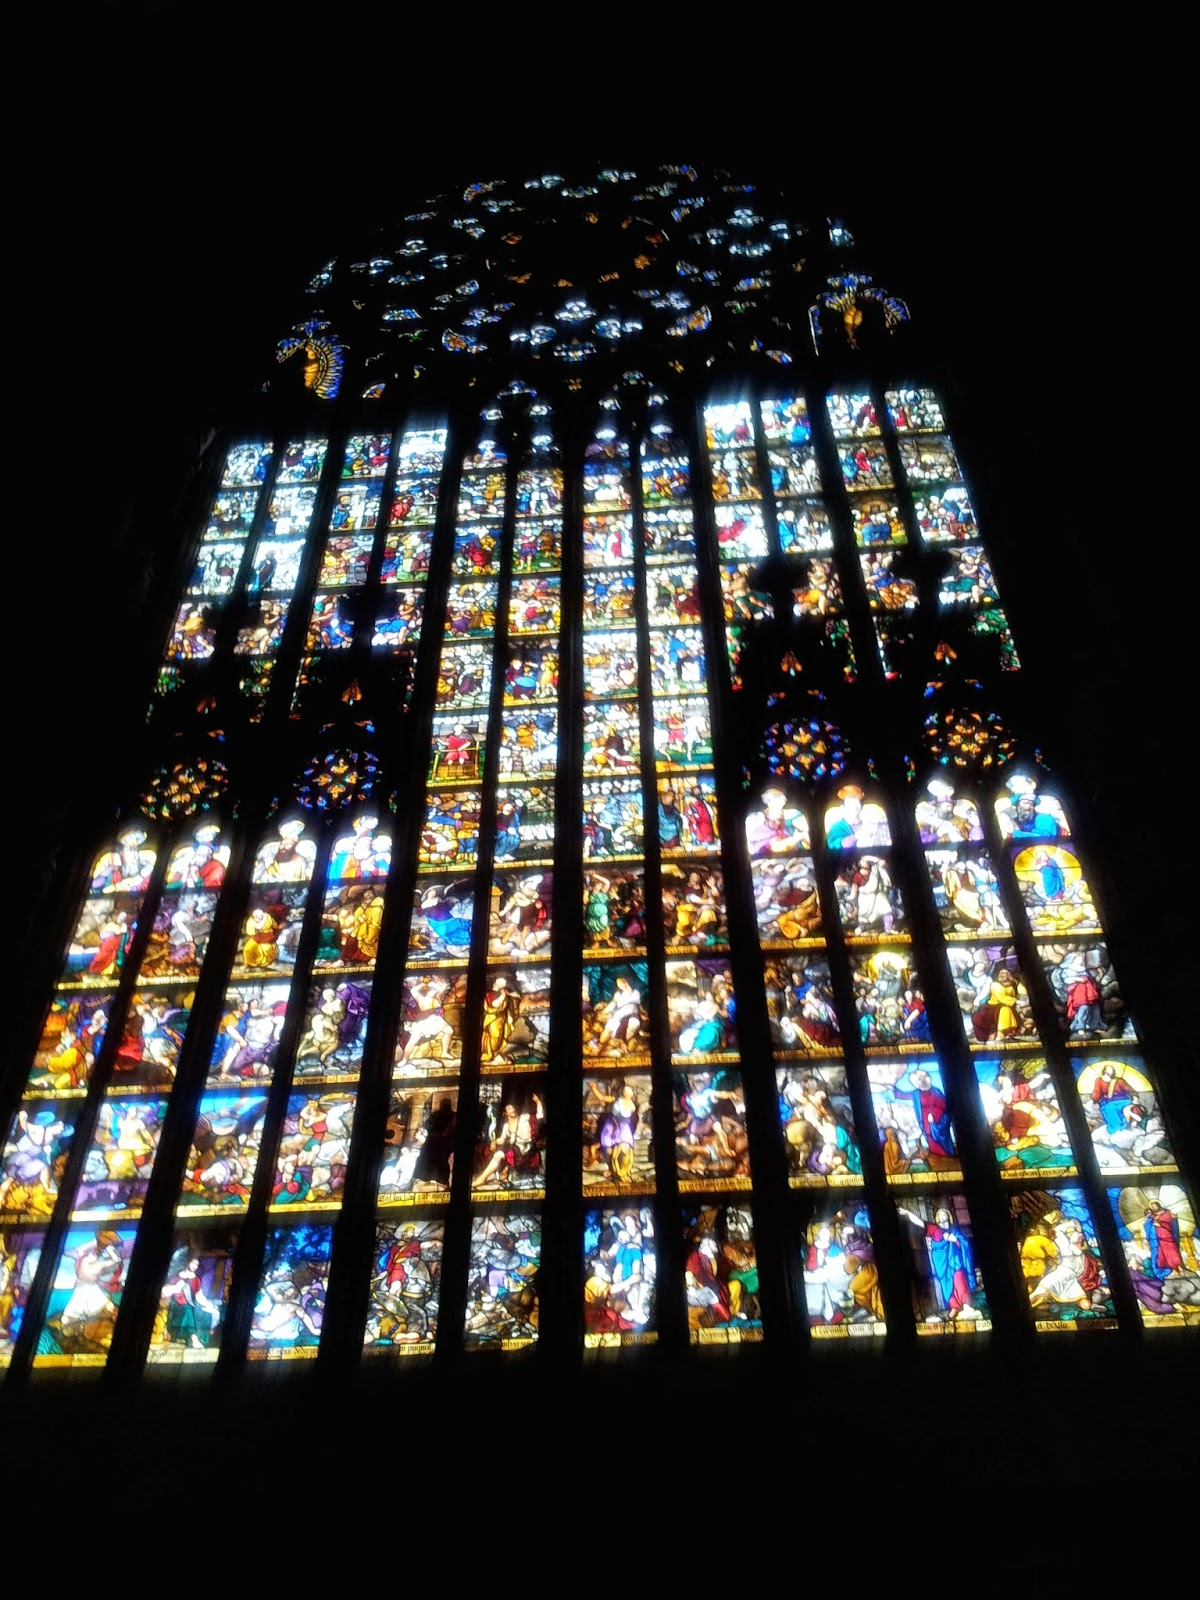 Stained glass windows inside the Duomo, Milan